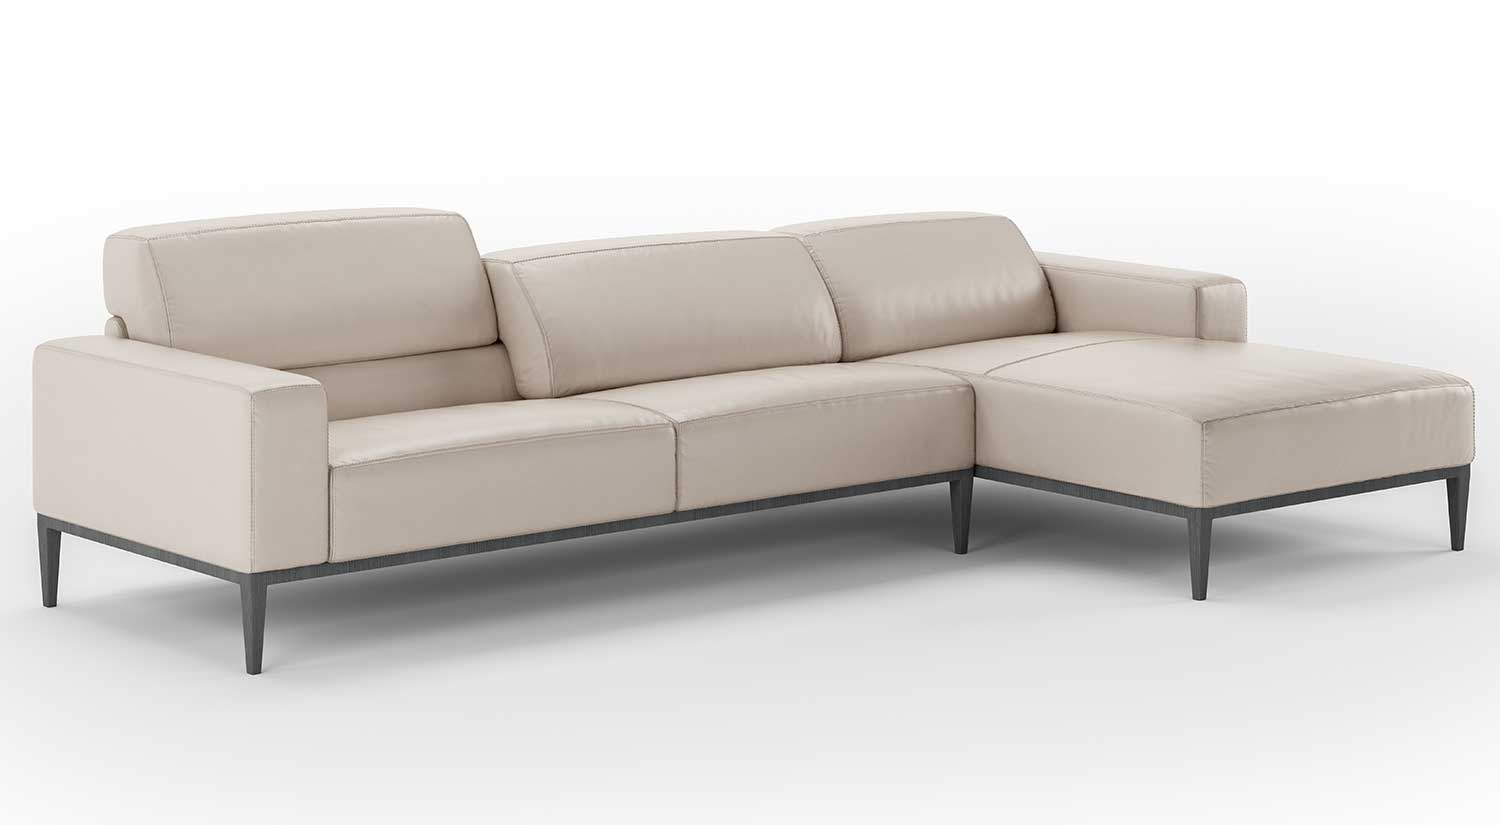 American Leather Ryker Seating